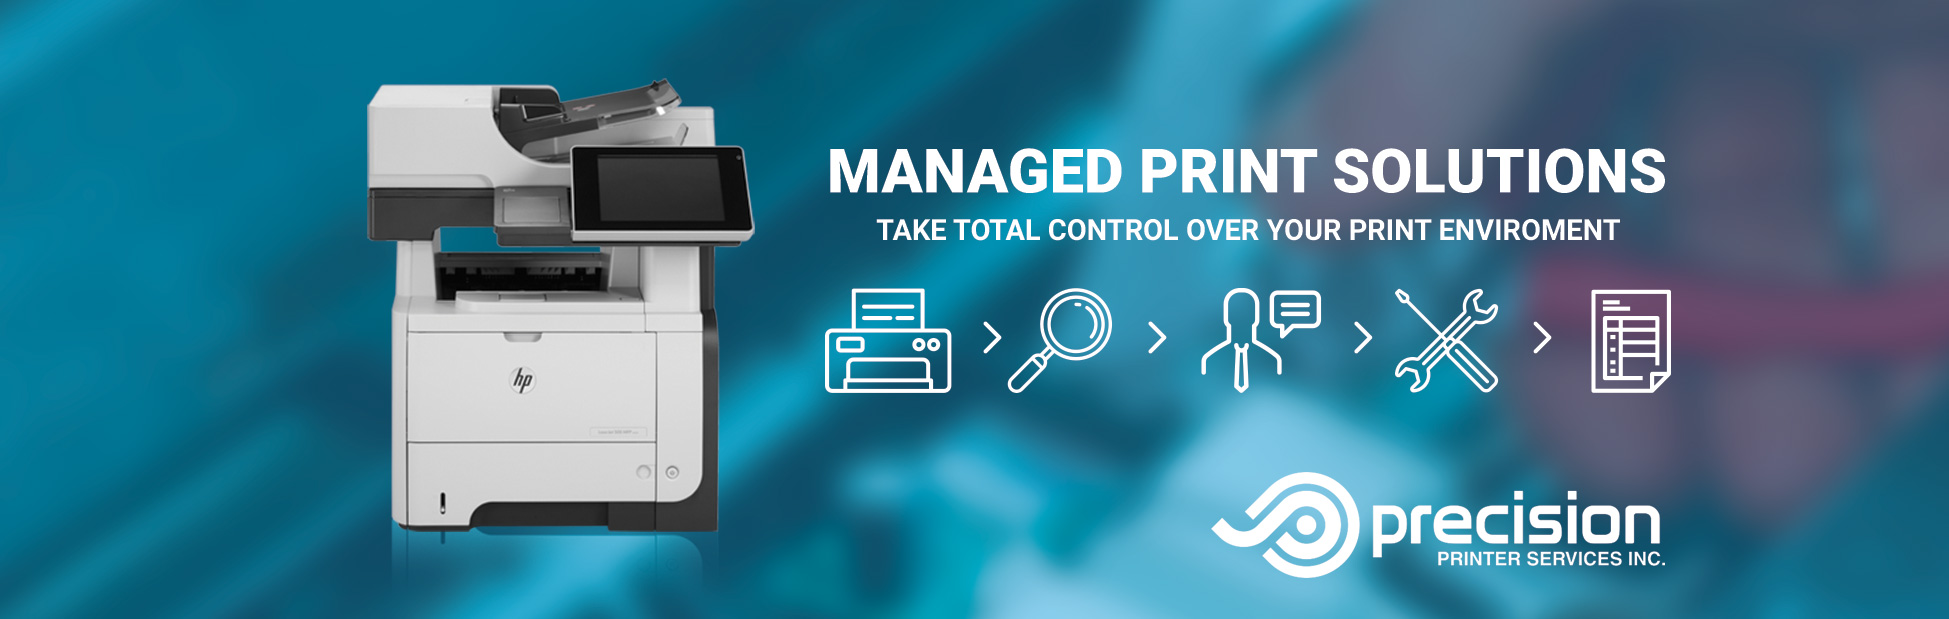 Managed Print Solutions